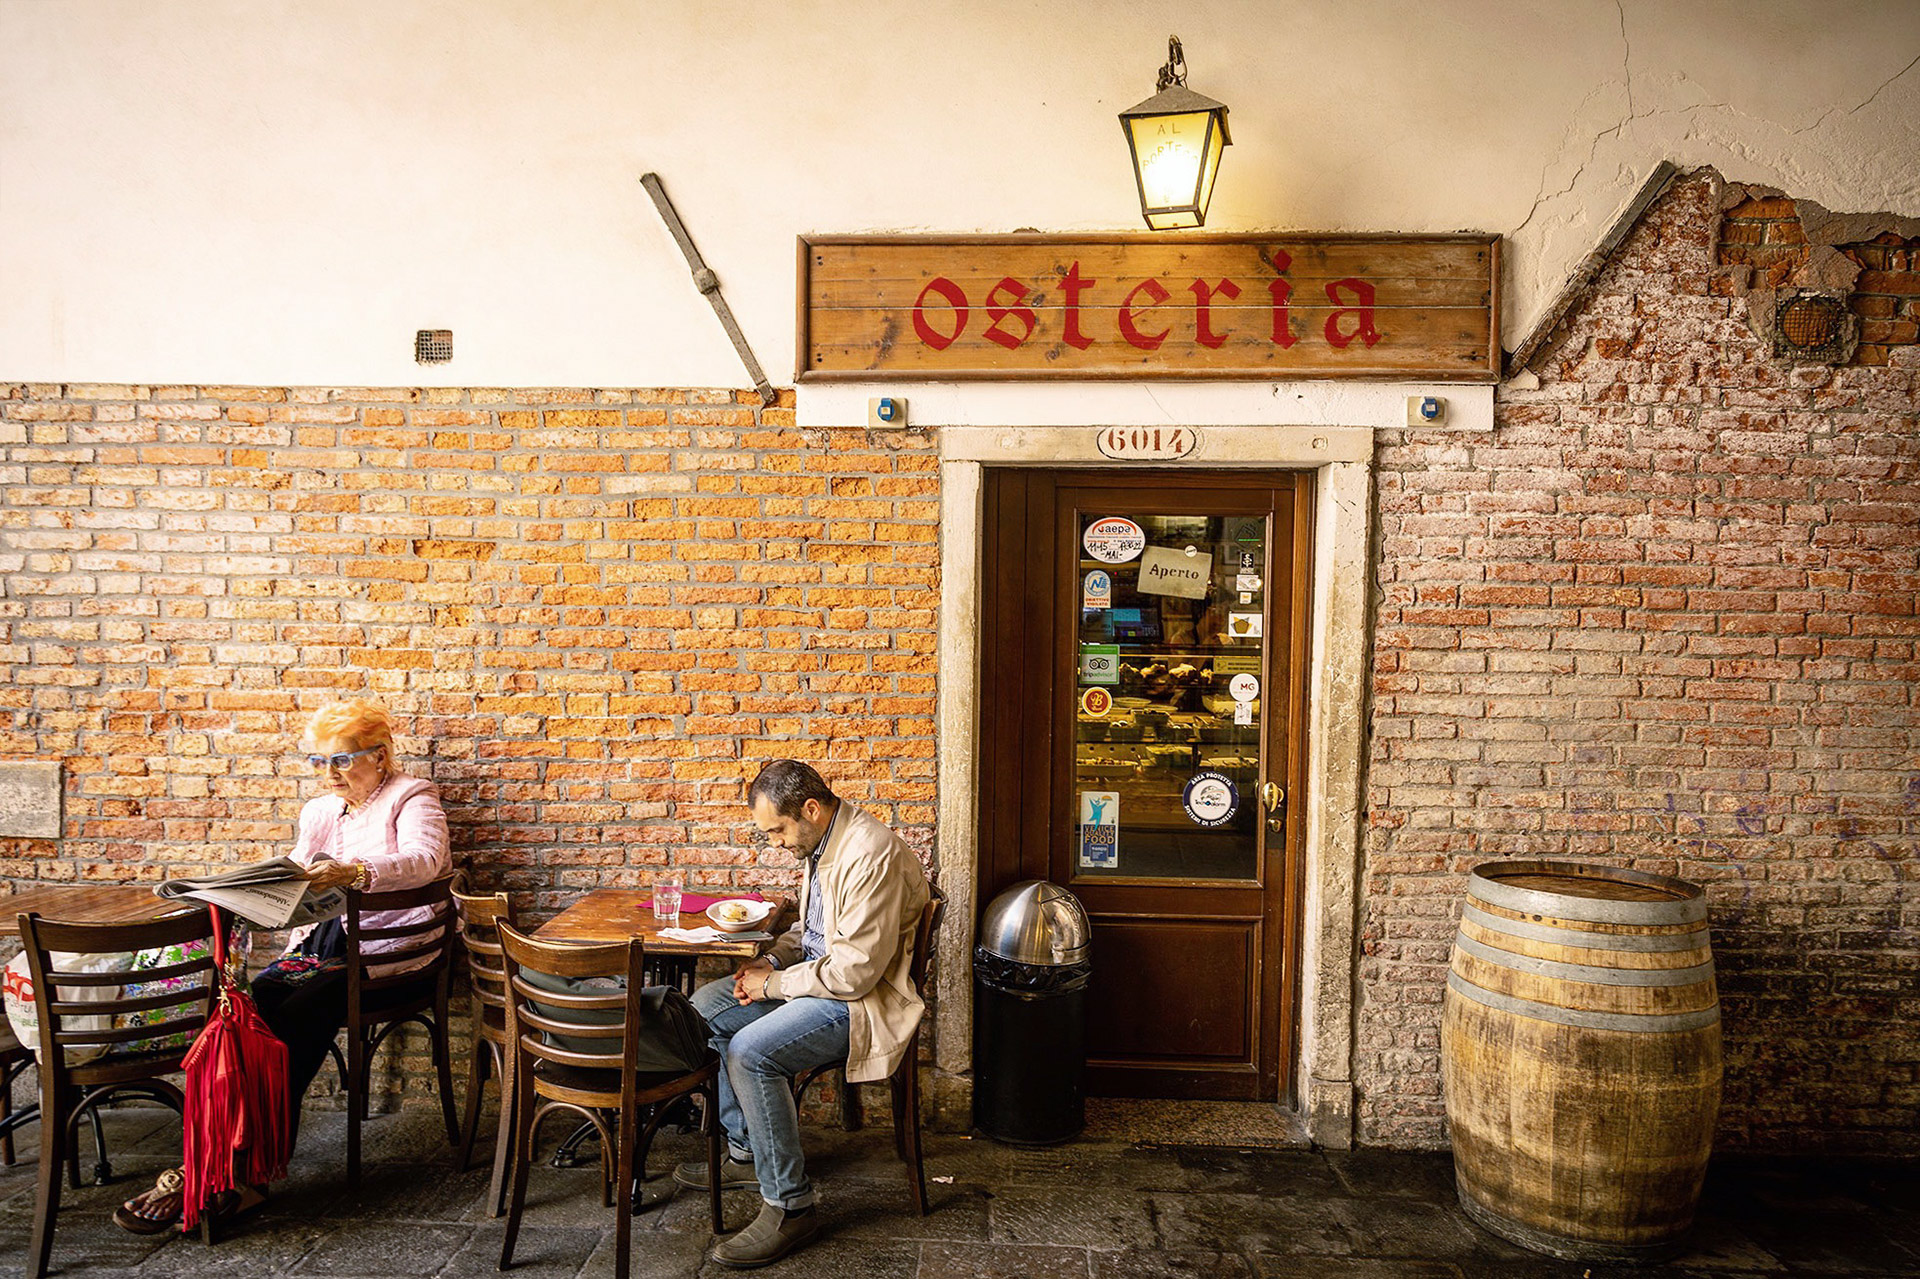 Osteria in Venezia with locals